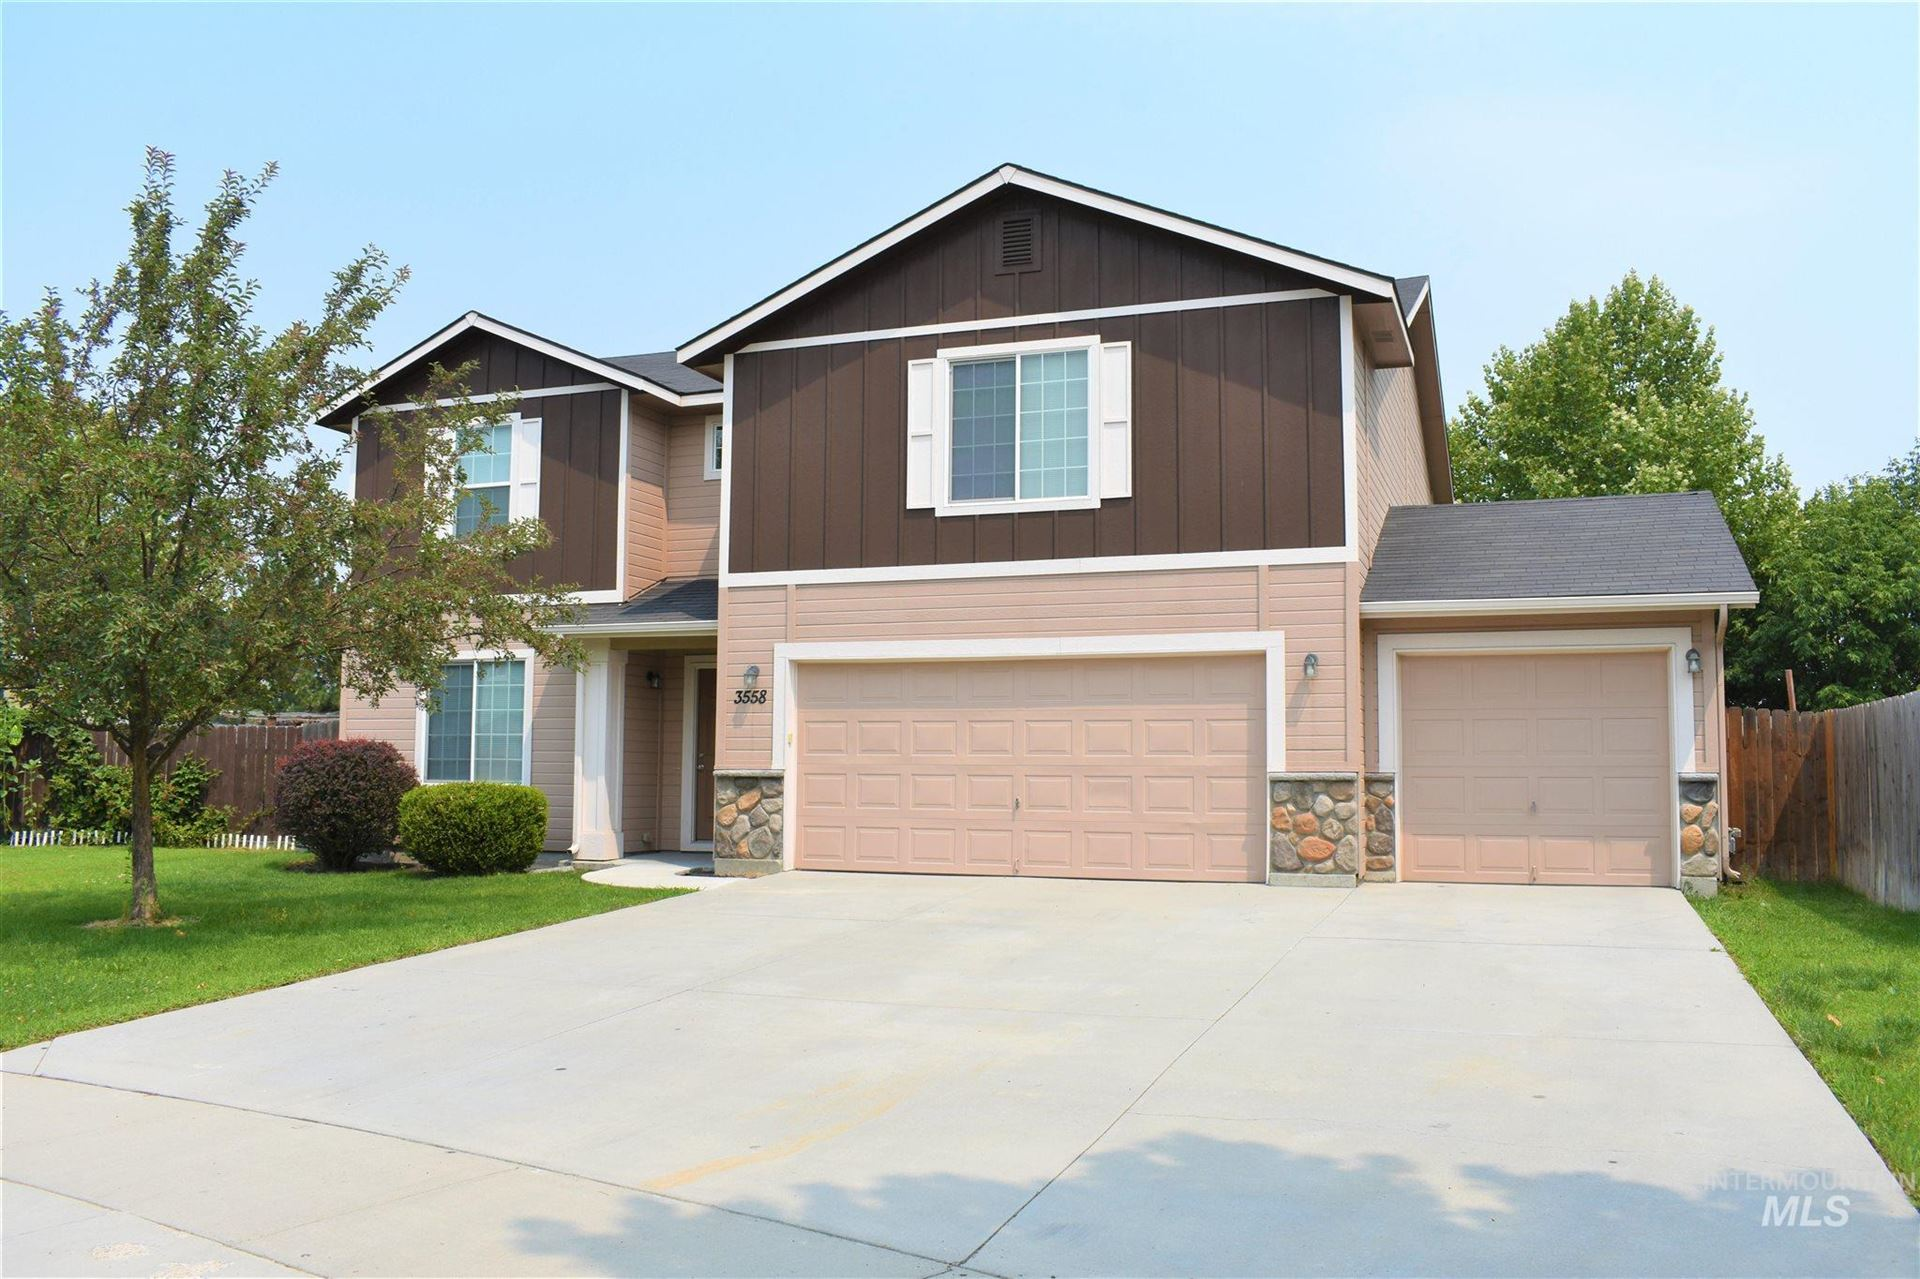 3558 N Bryce Canyon Ave, Meridian, ID 83646 - MLS#: 98812600